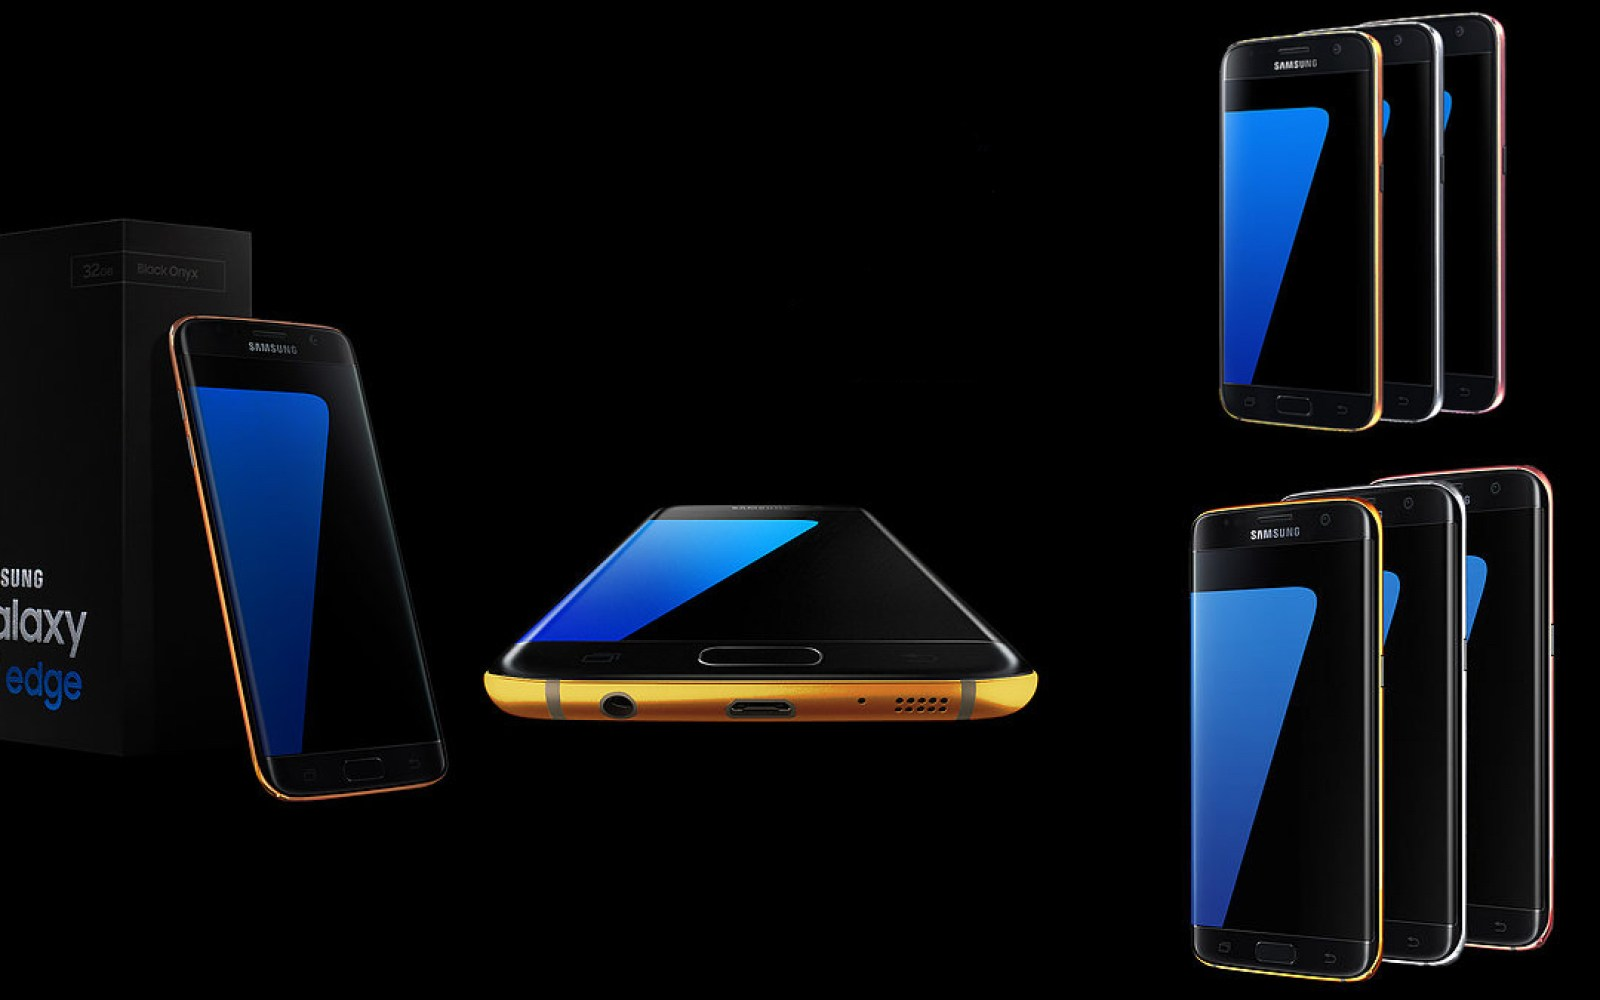 24K gold-plated Galaxy S7 and S7 Edge will set you back at least $2370, pre-orders live now